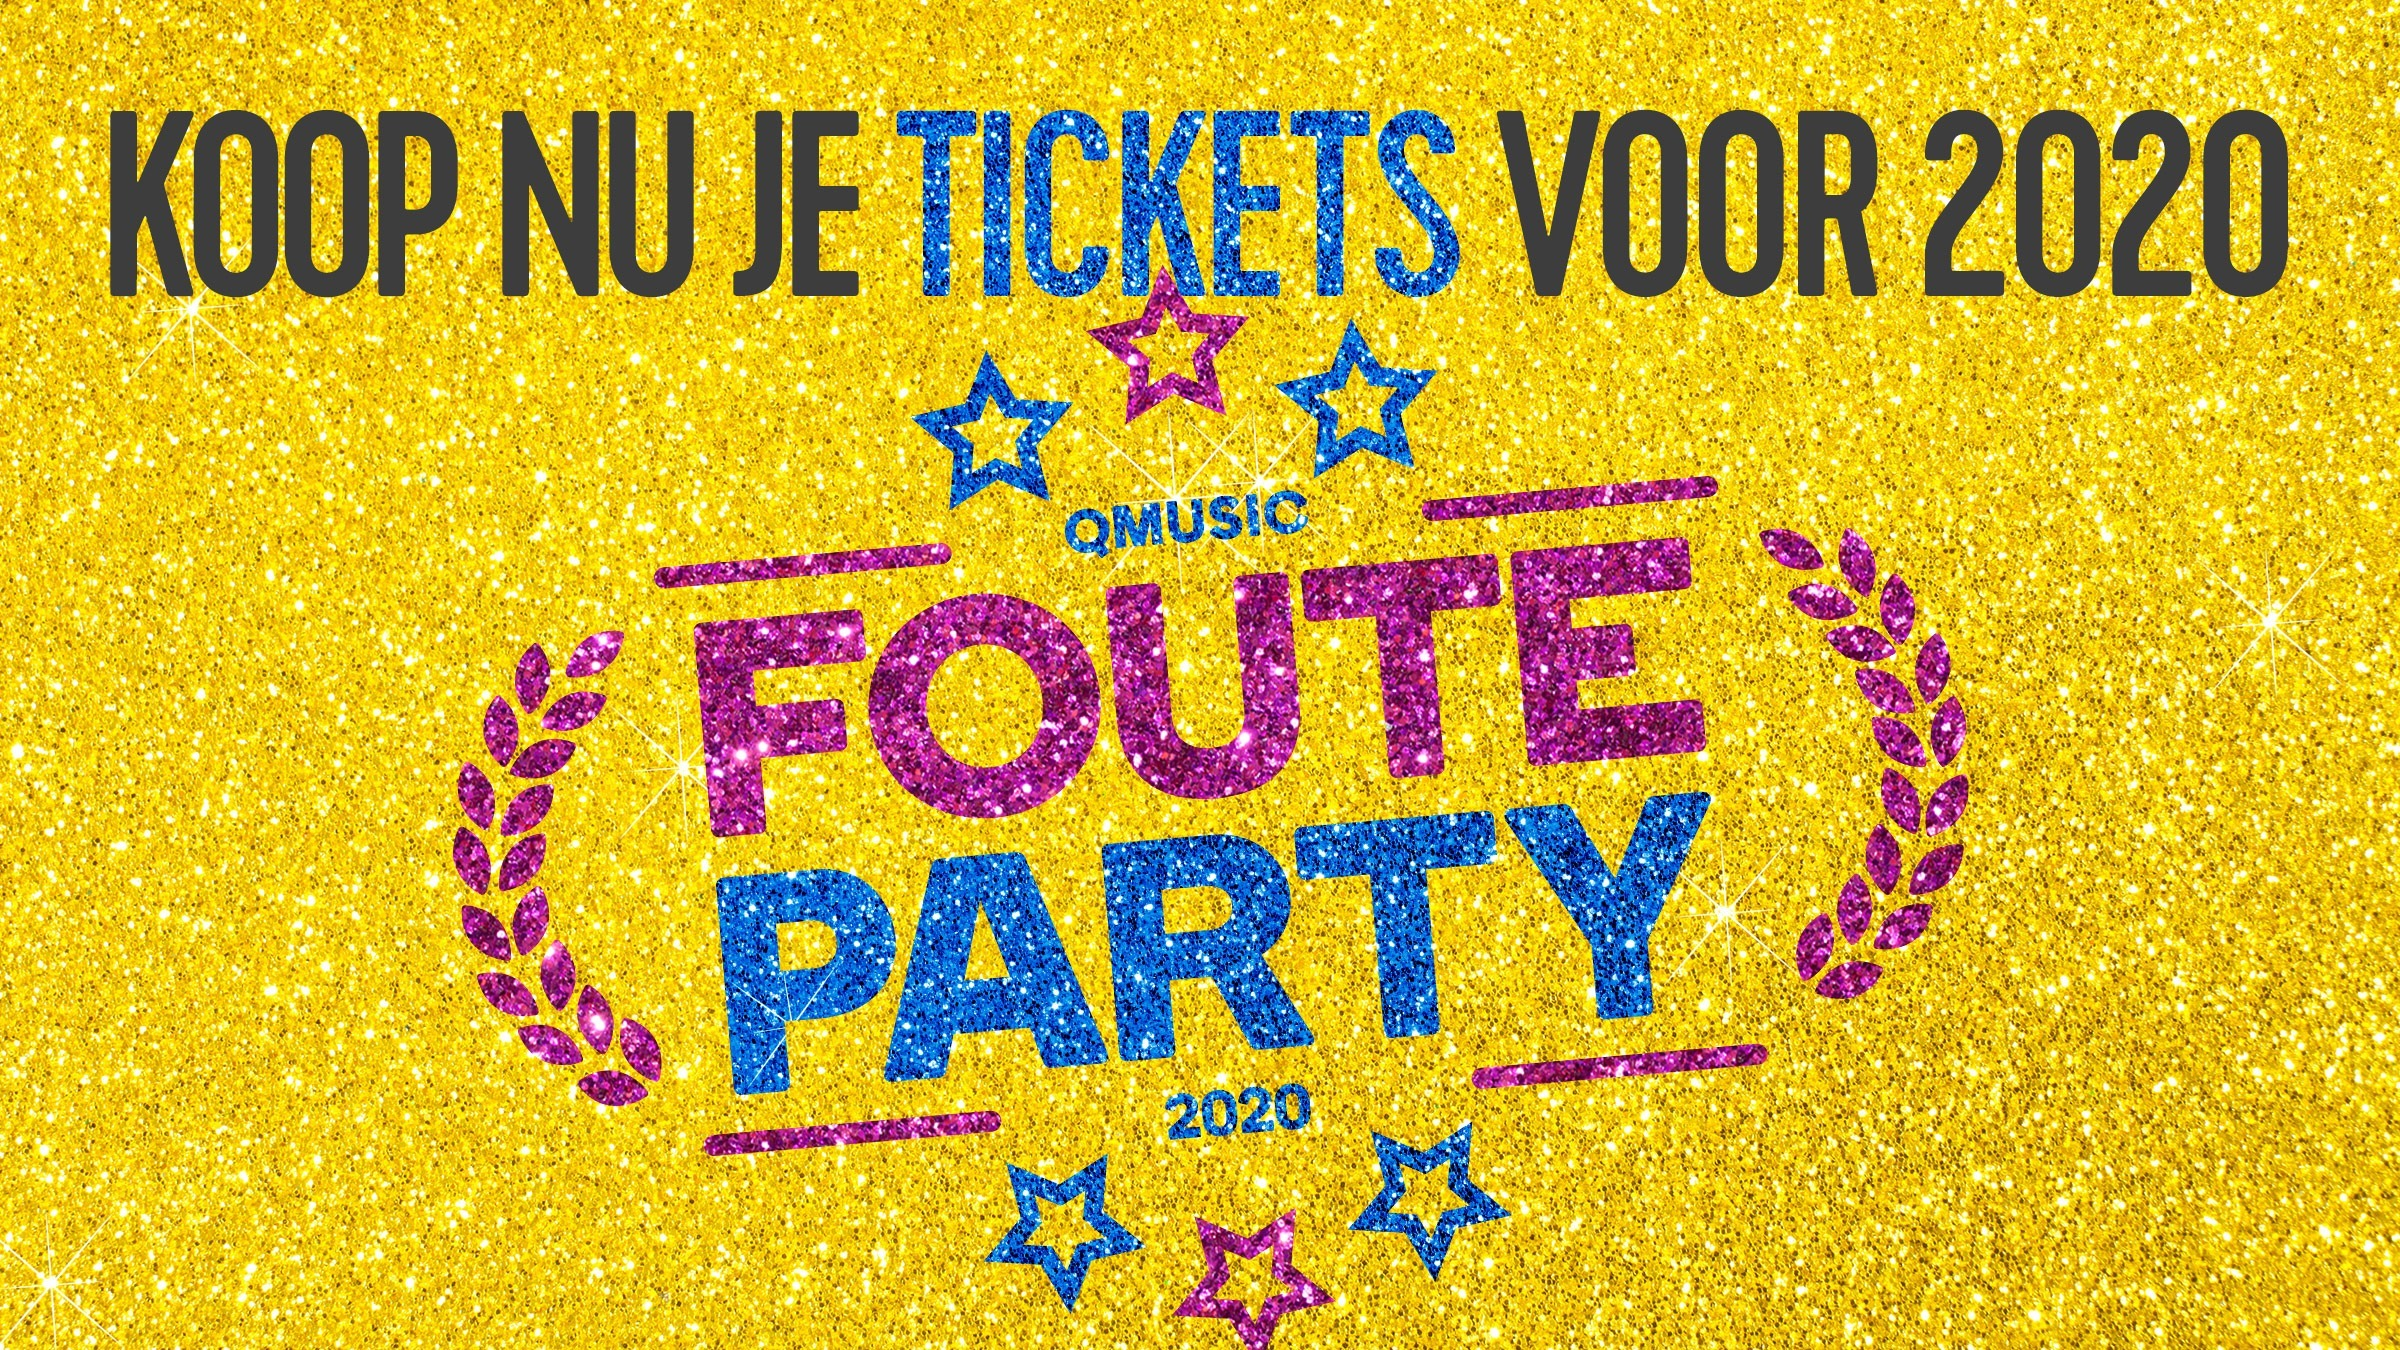 Qmusic teaser fouteparty2020 tickets